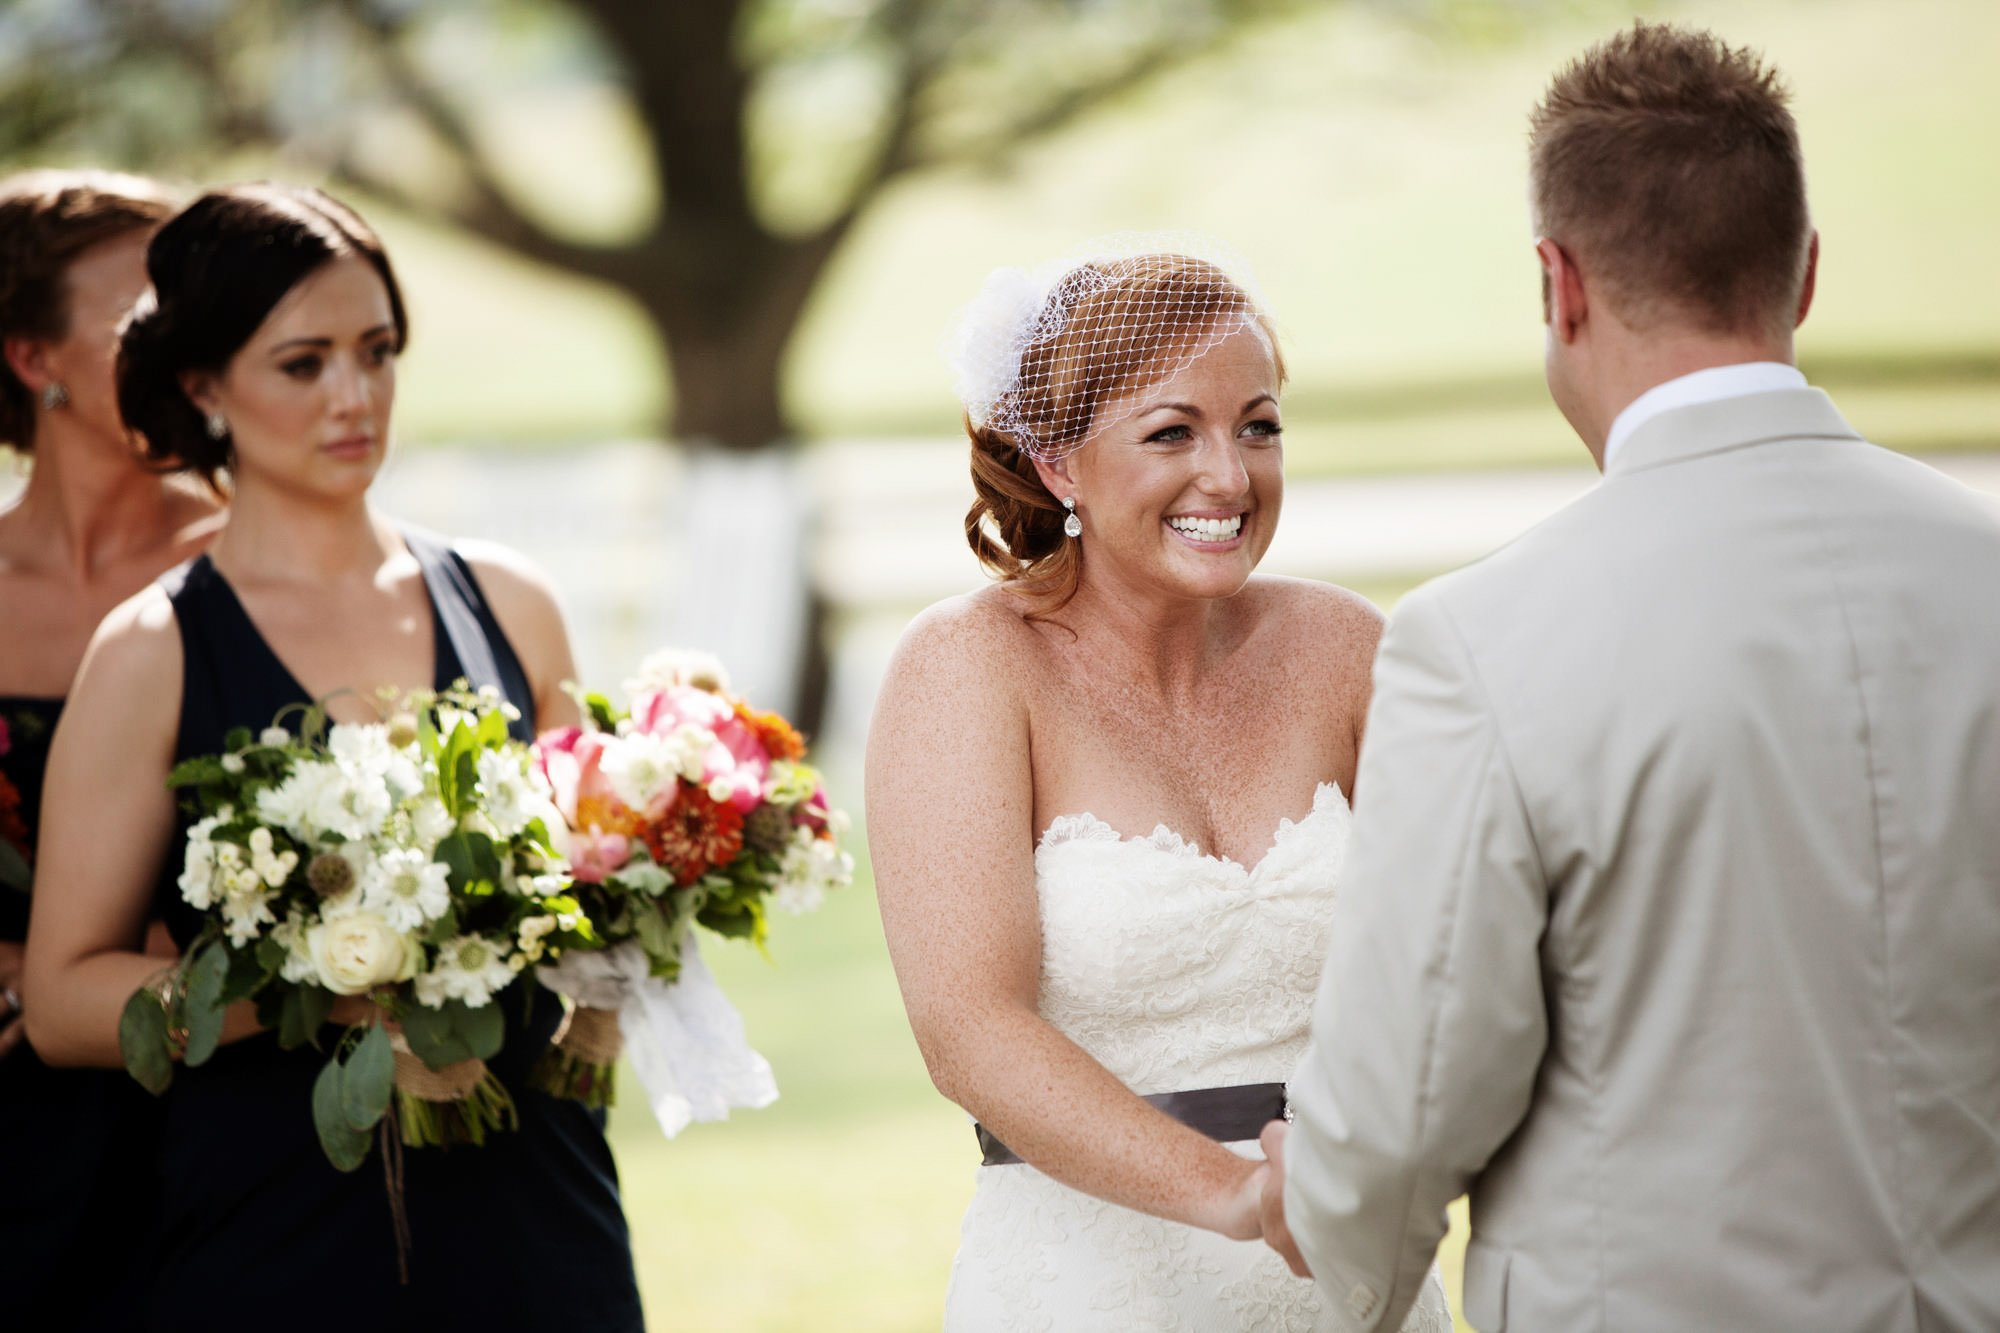 The bride smiles at her groom during the Marriott Ranch wedding ceremony.